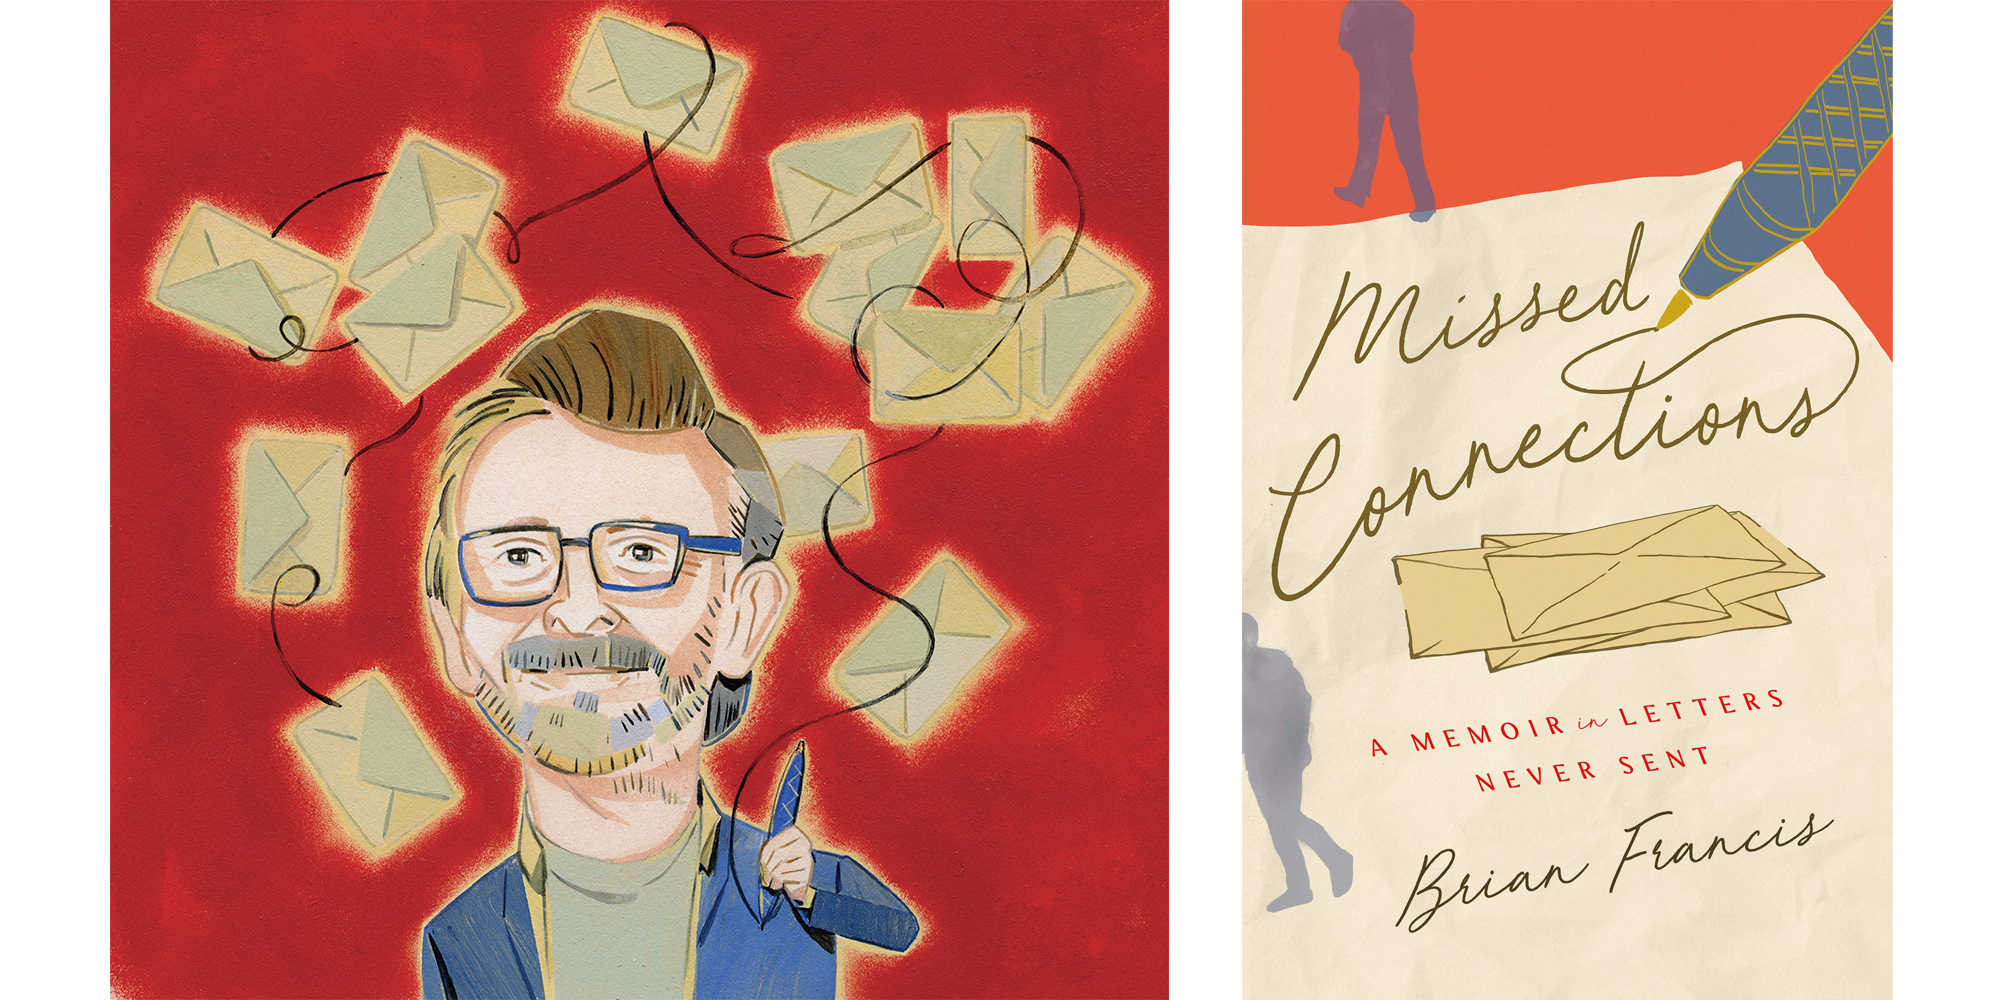 The cover of Brian Francis's Missed Connections with an illustration of the author